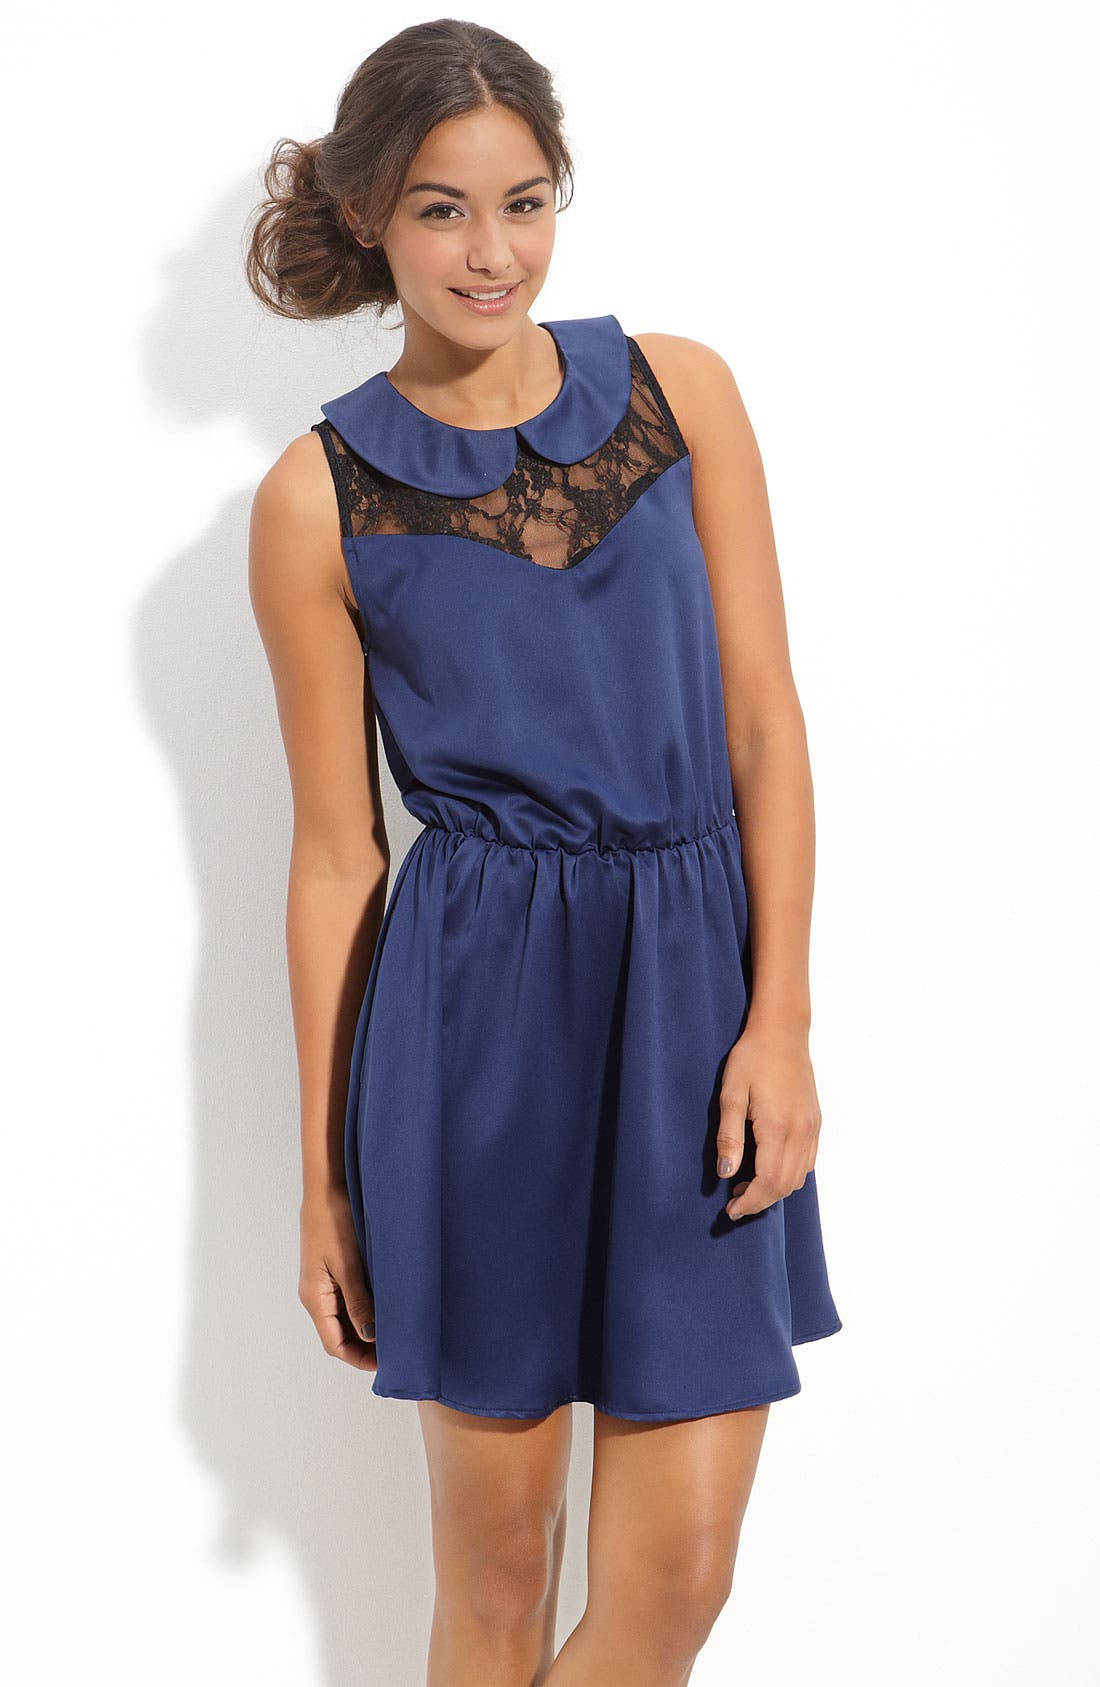 Alternate Image 1 Selected - Mimi Chica Lace Inset Dress (Juniors)